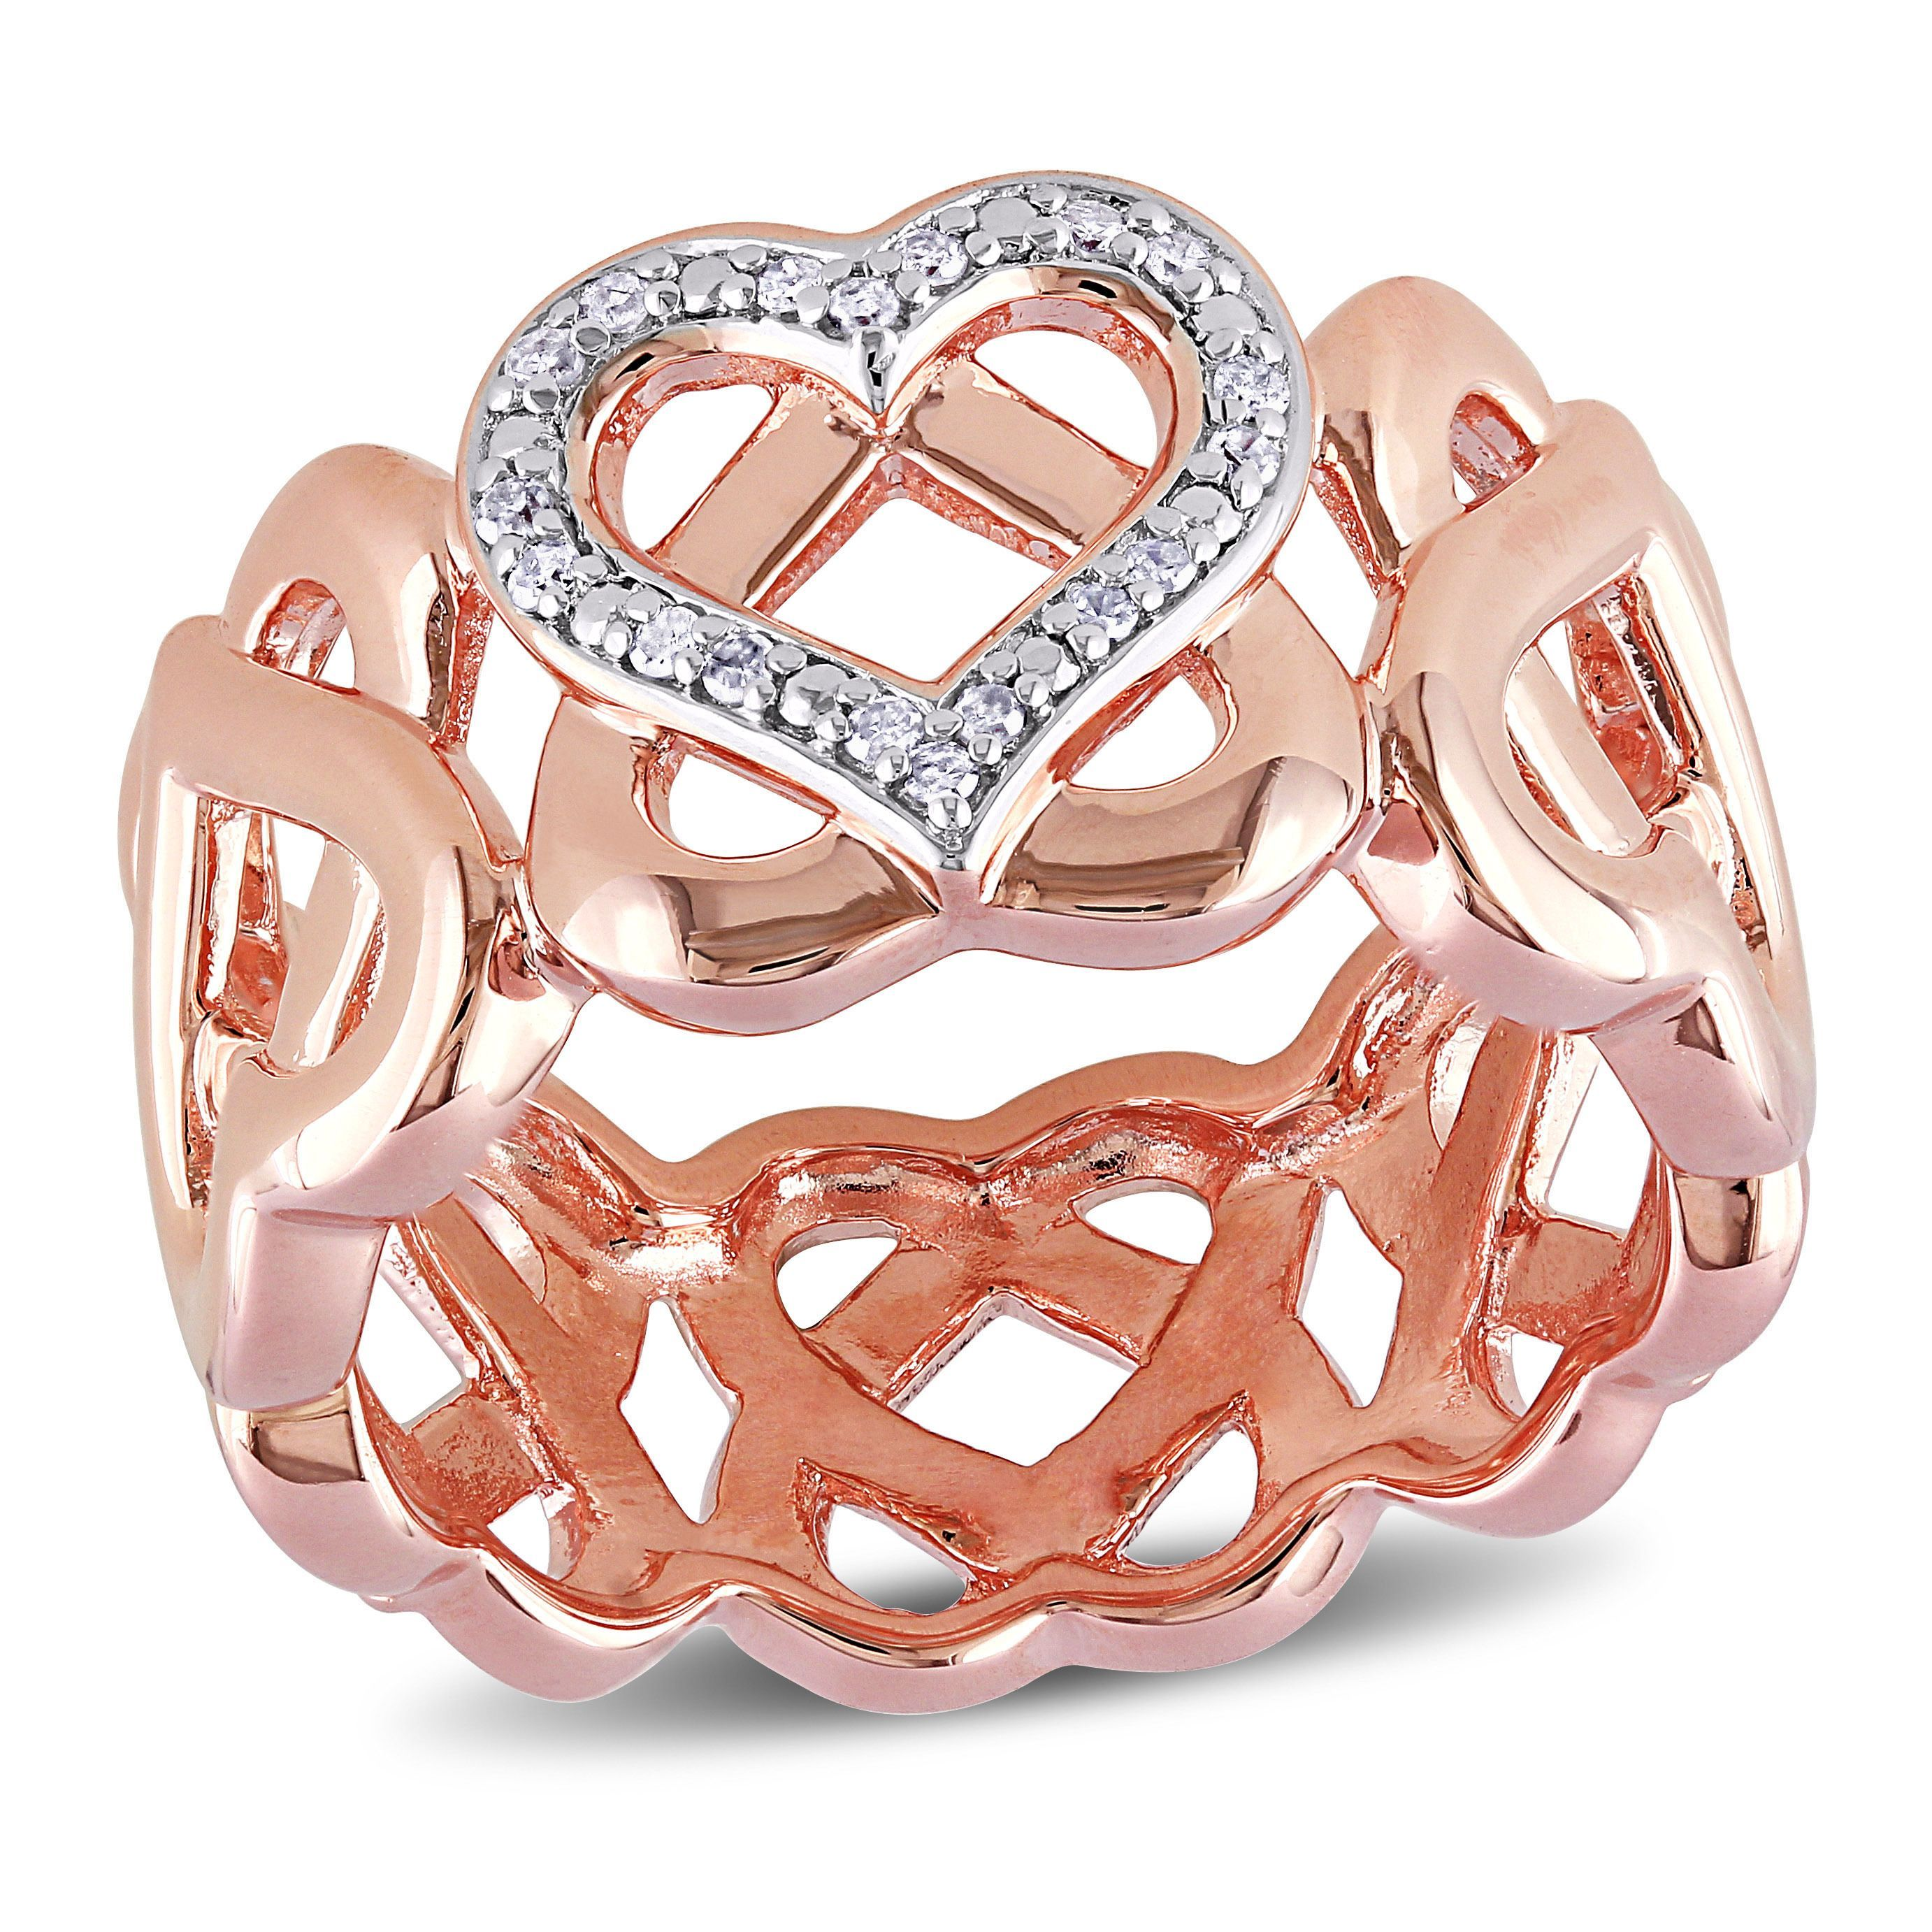 Miadora Rose Plated Silver 1/10ct TDW Diamond Heart Ring (H-I, I2-I3) (Size 5), Women's, Pink